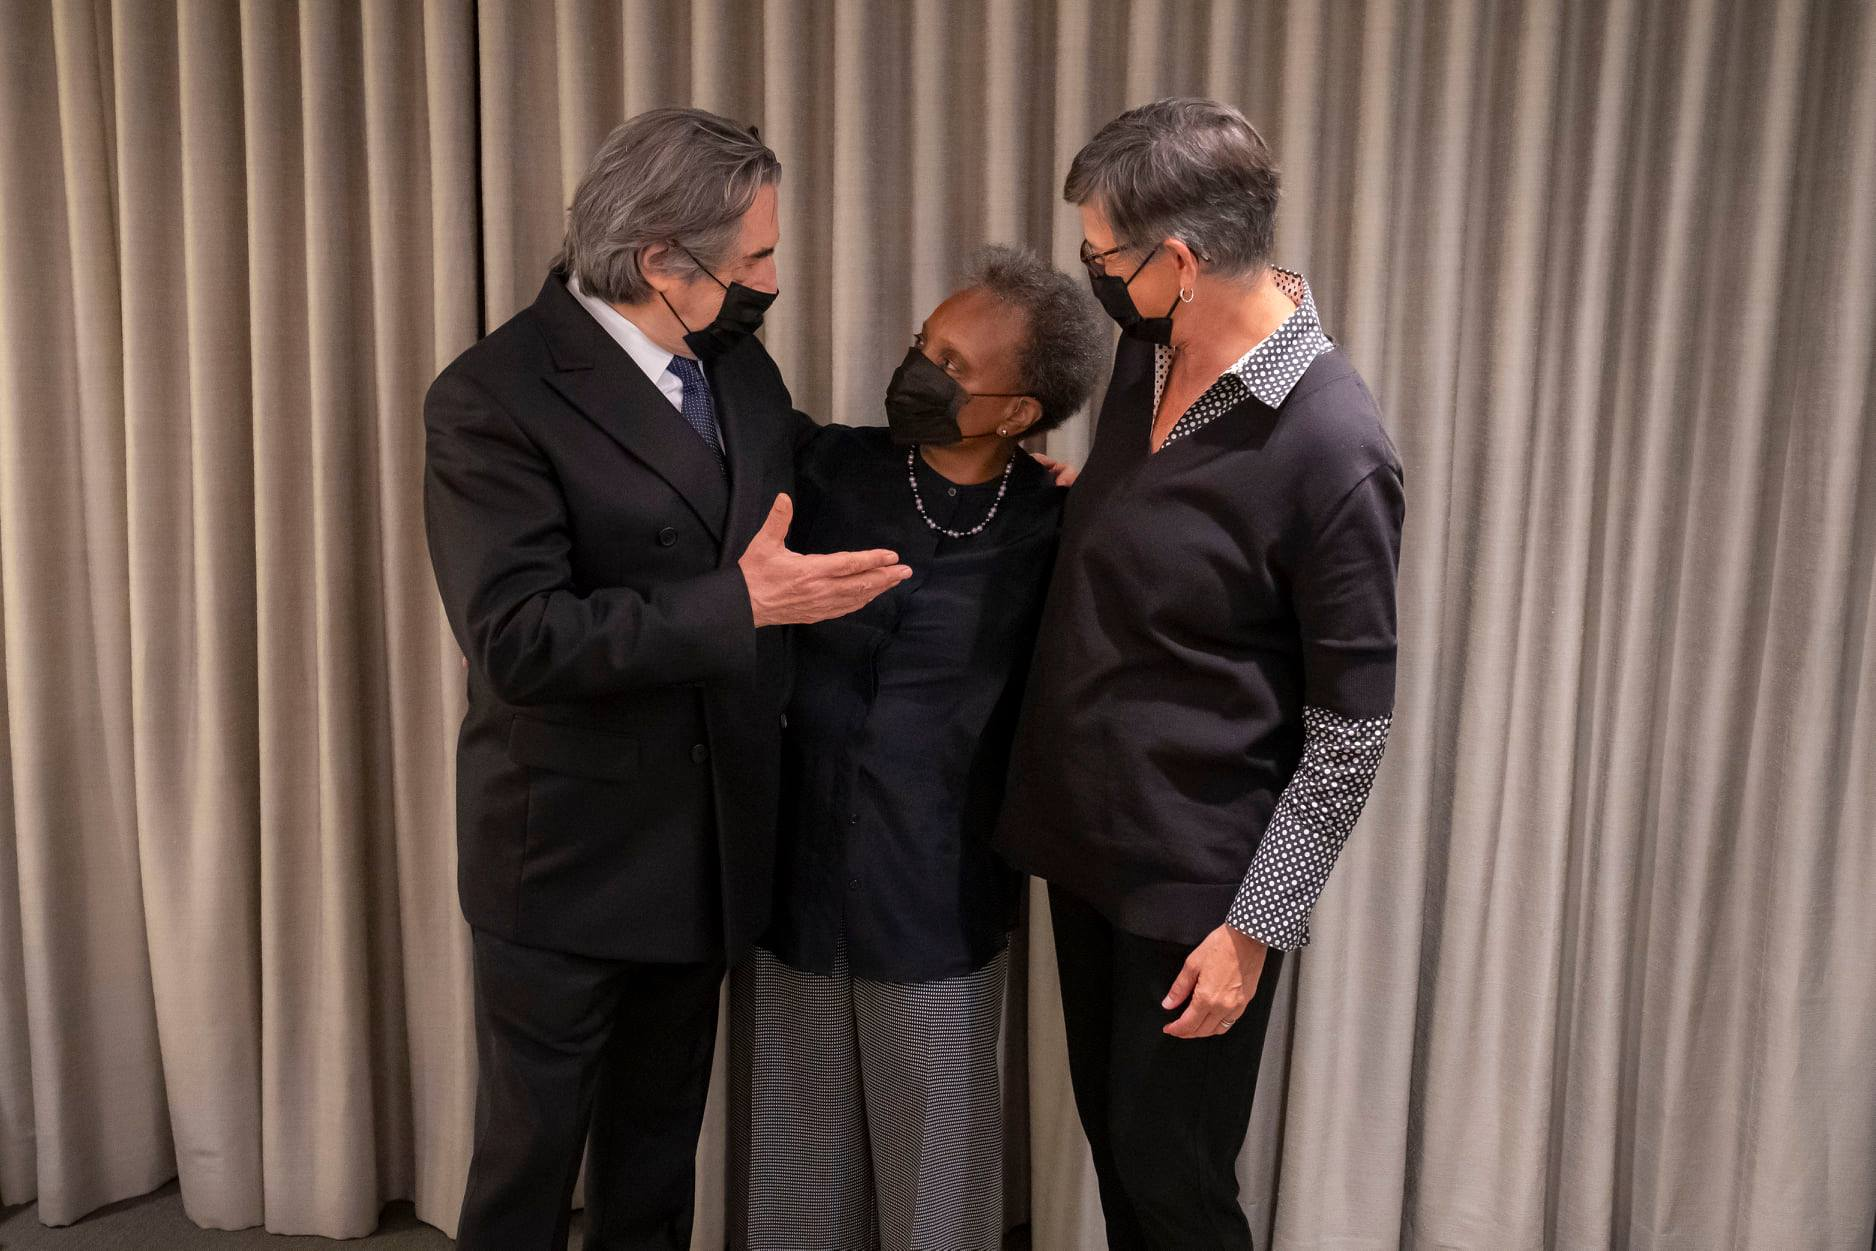 Muti meets Chicago's mayoral couple